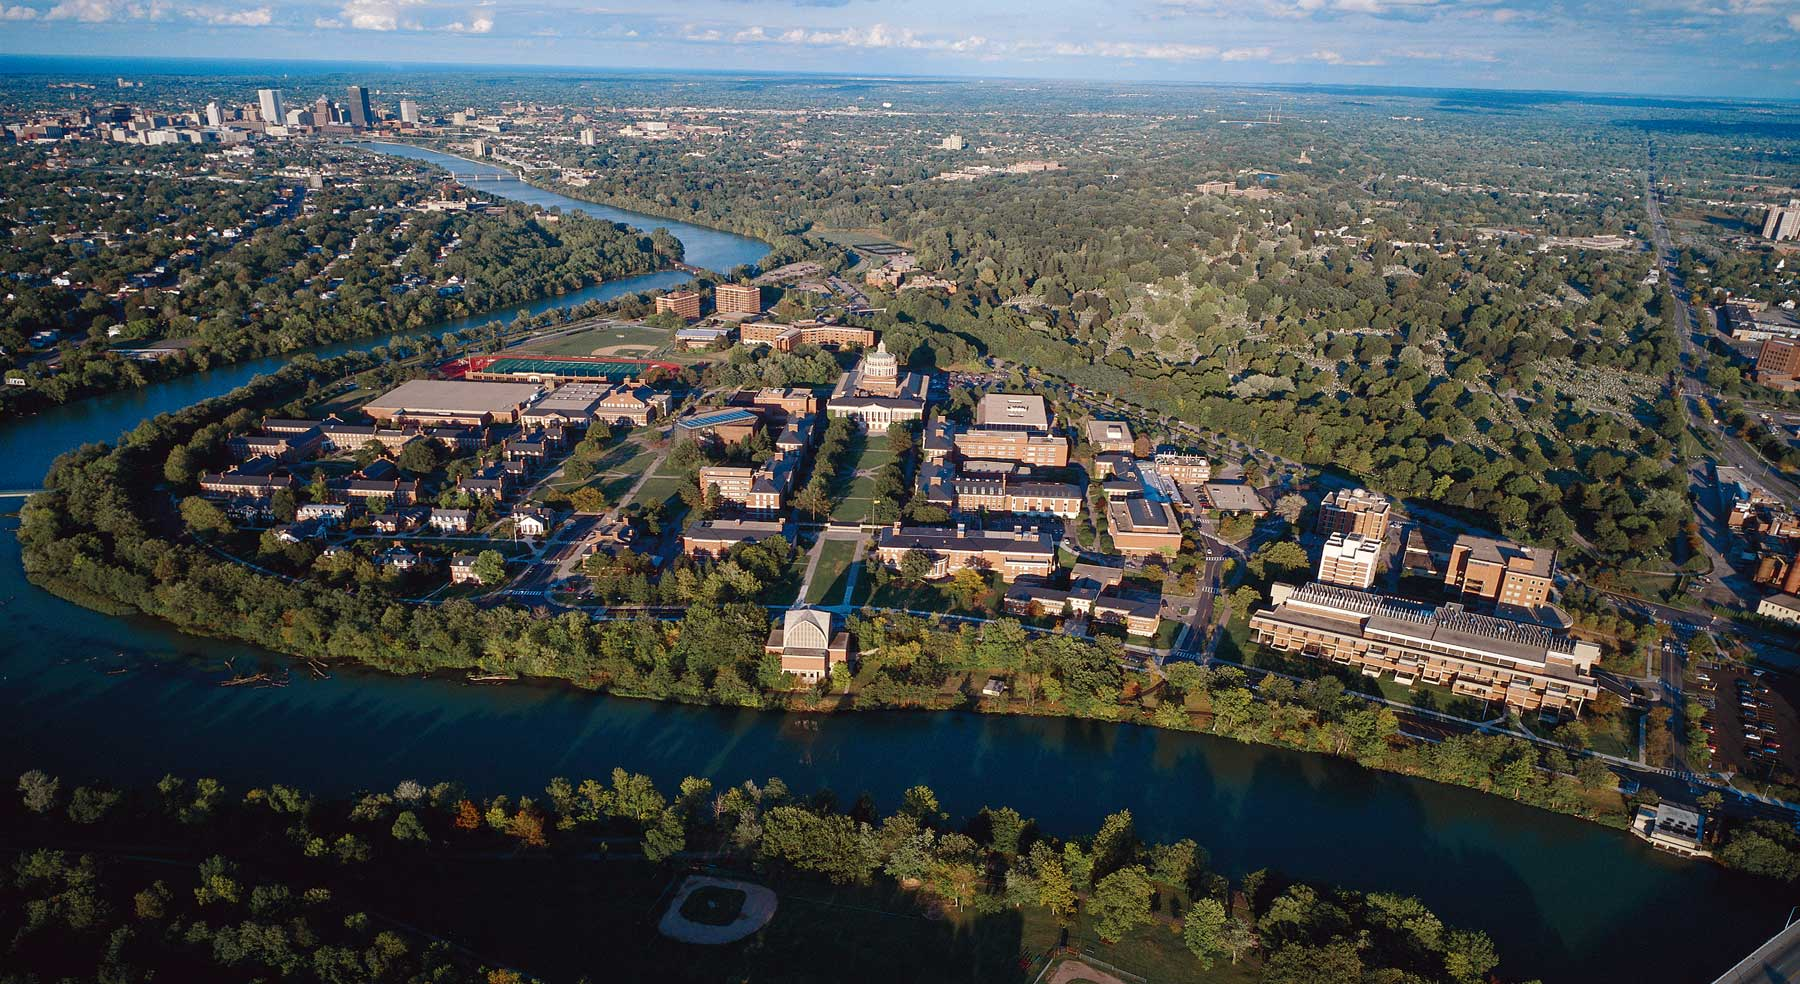 aerial view of River Campus